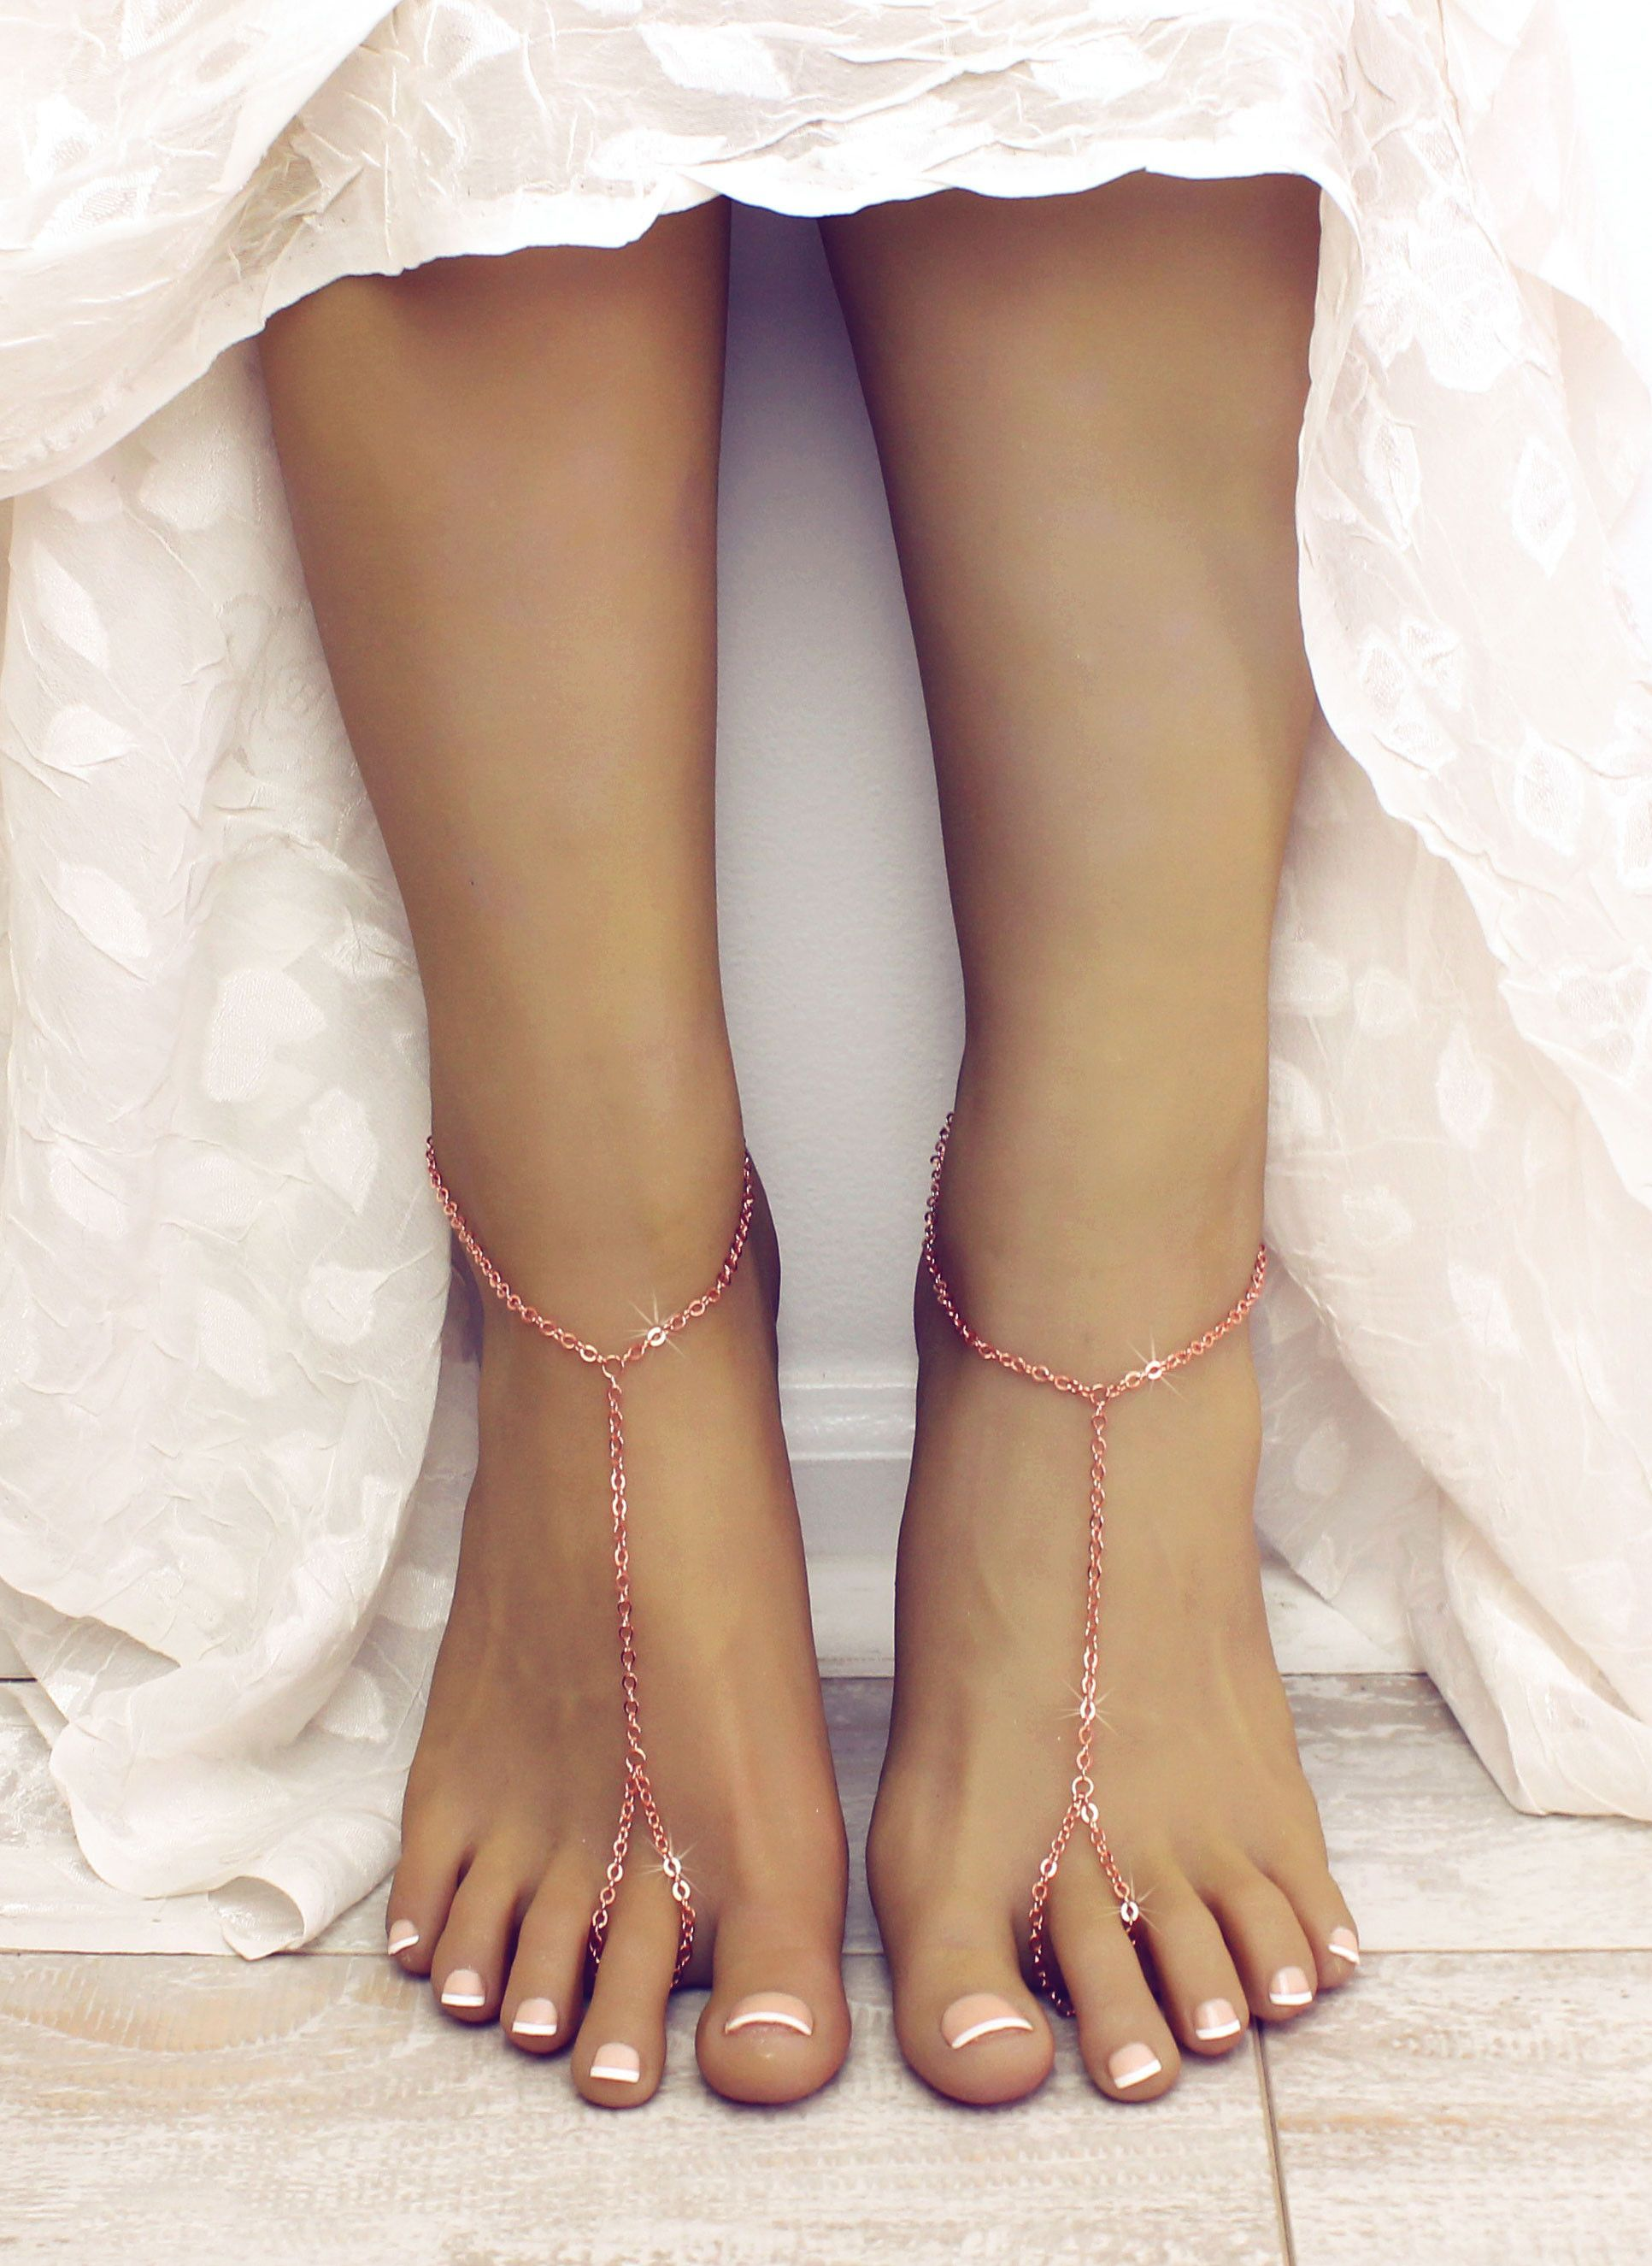 com anklets hashtag women anklet goldanklets for on feedyeti gold